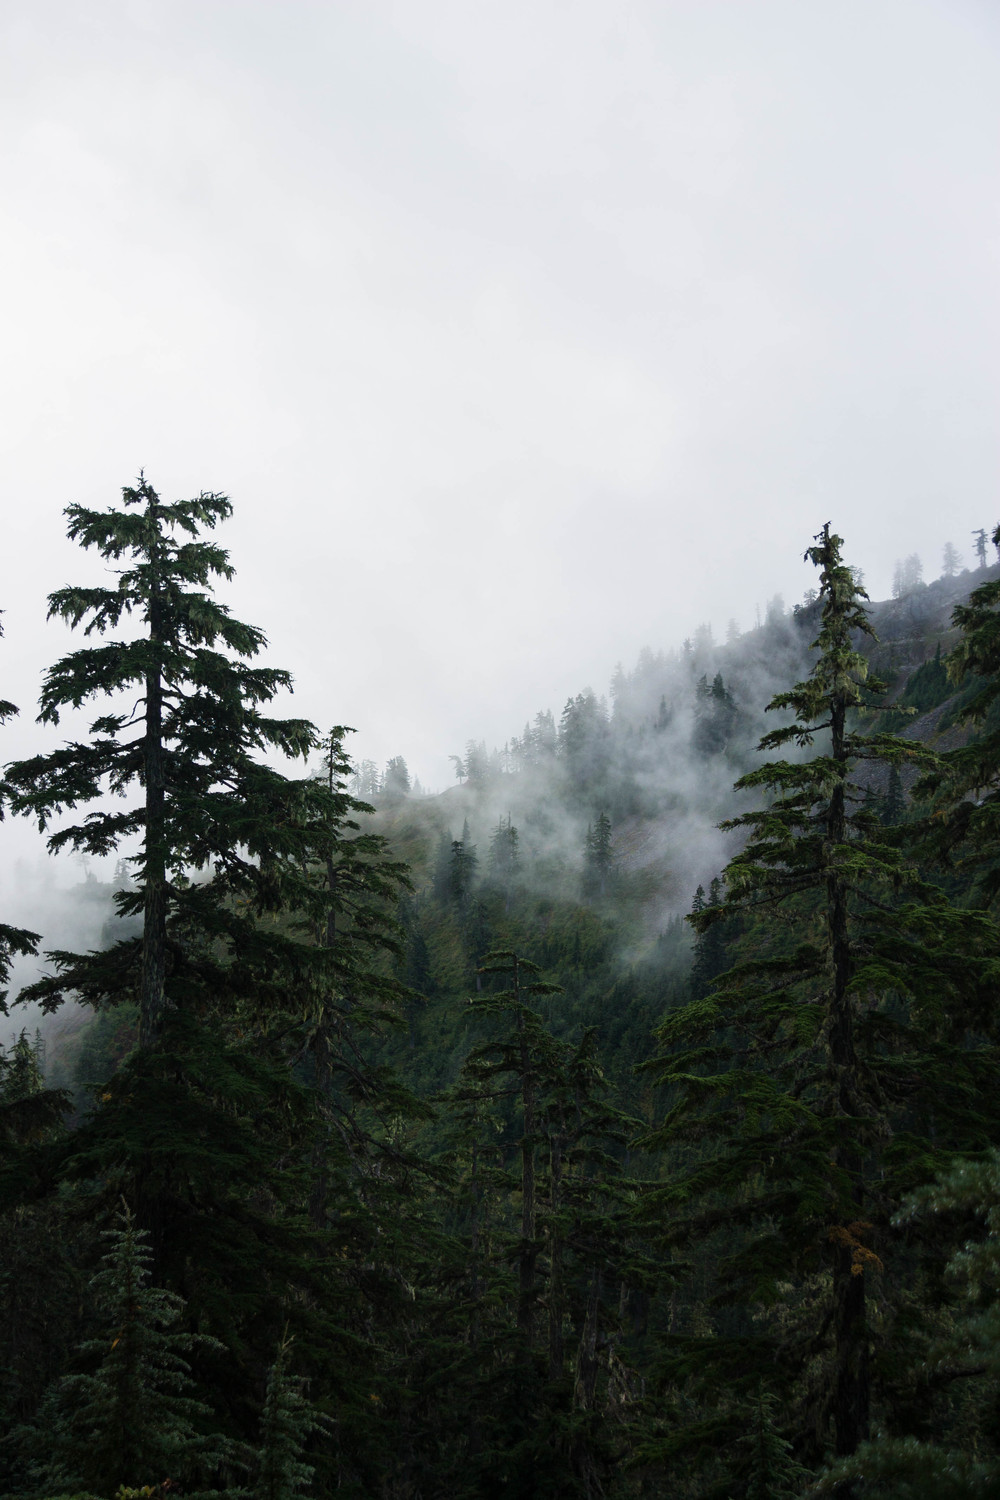 Wet, foggy forest